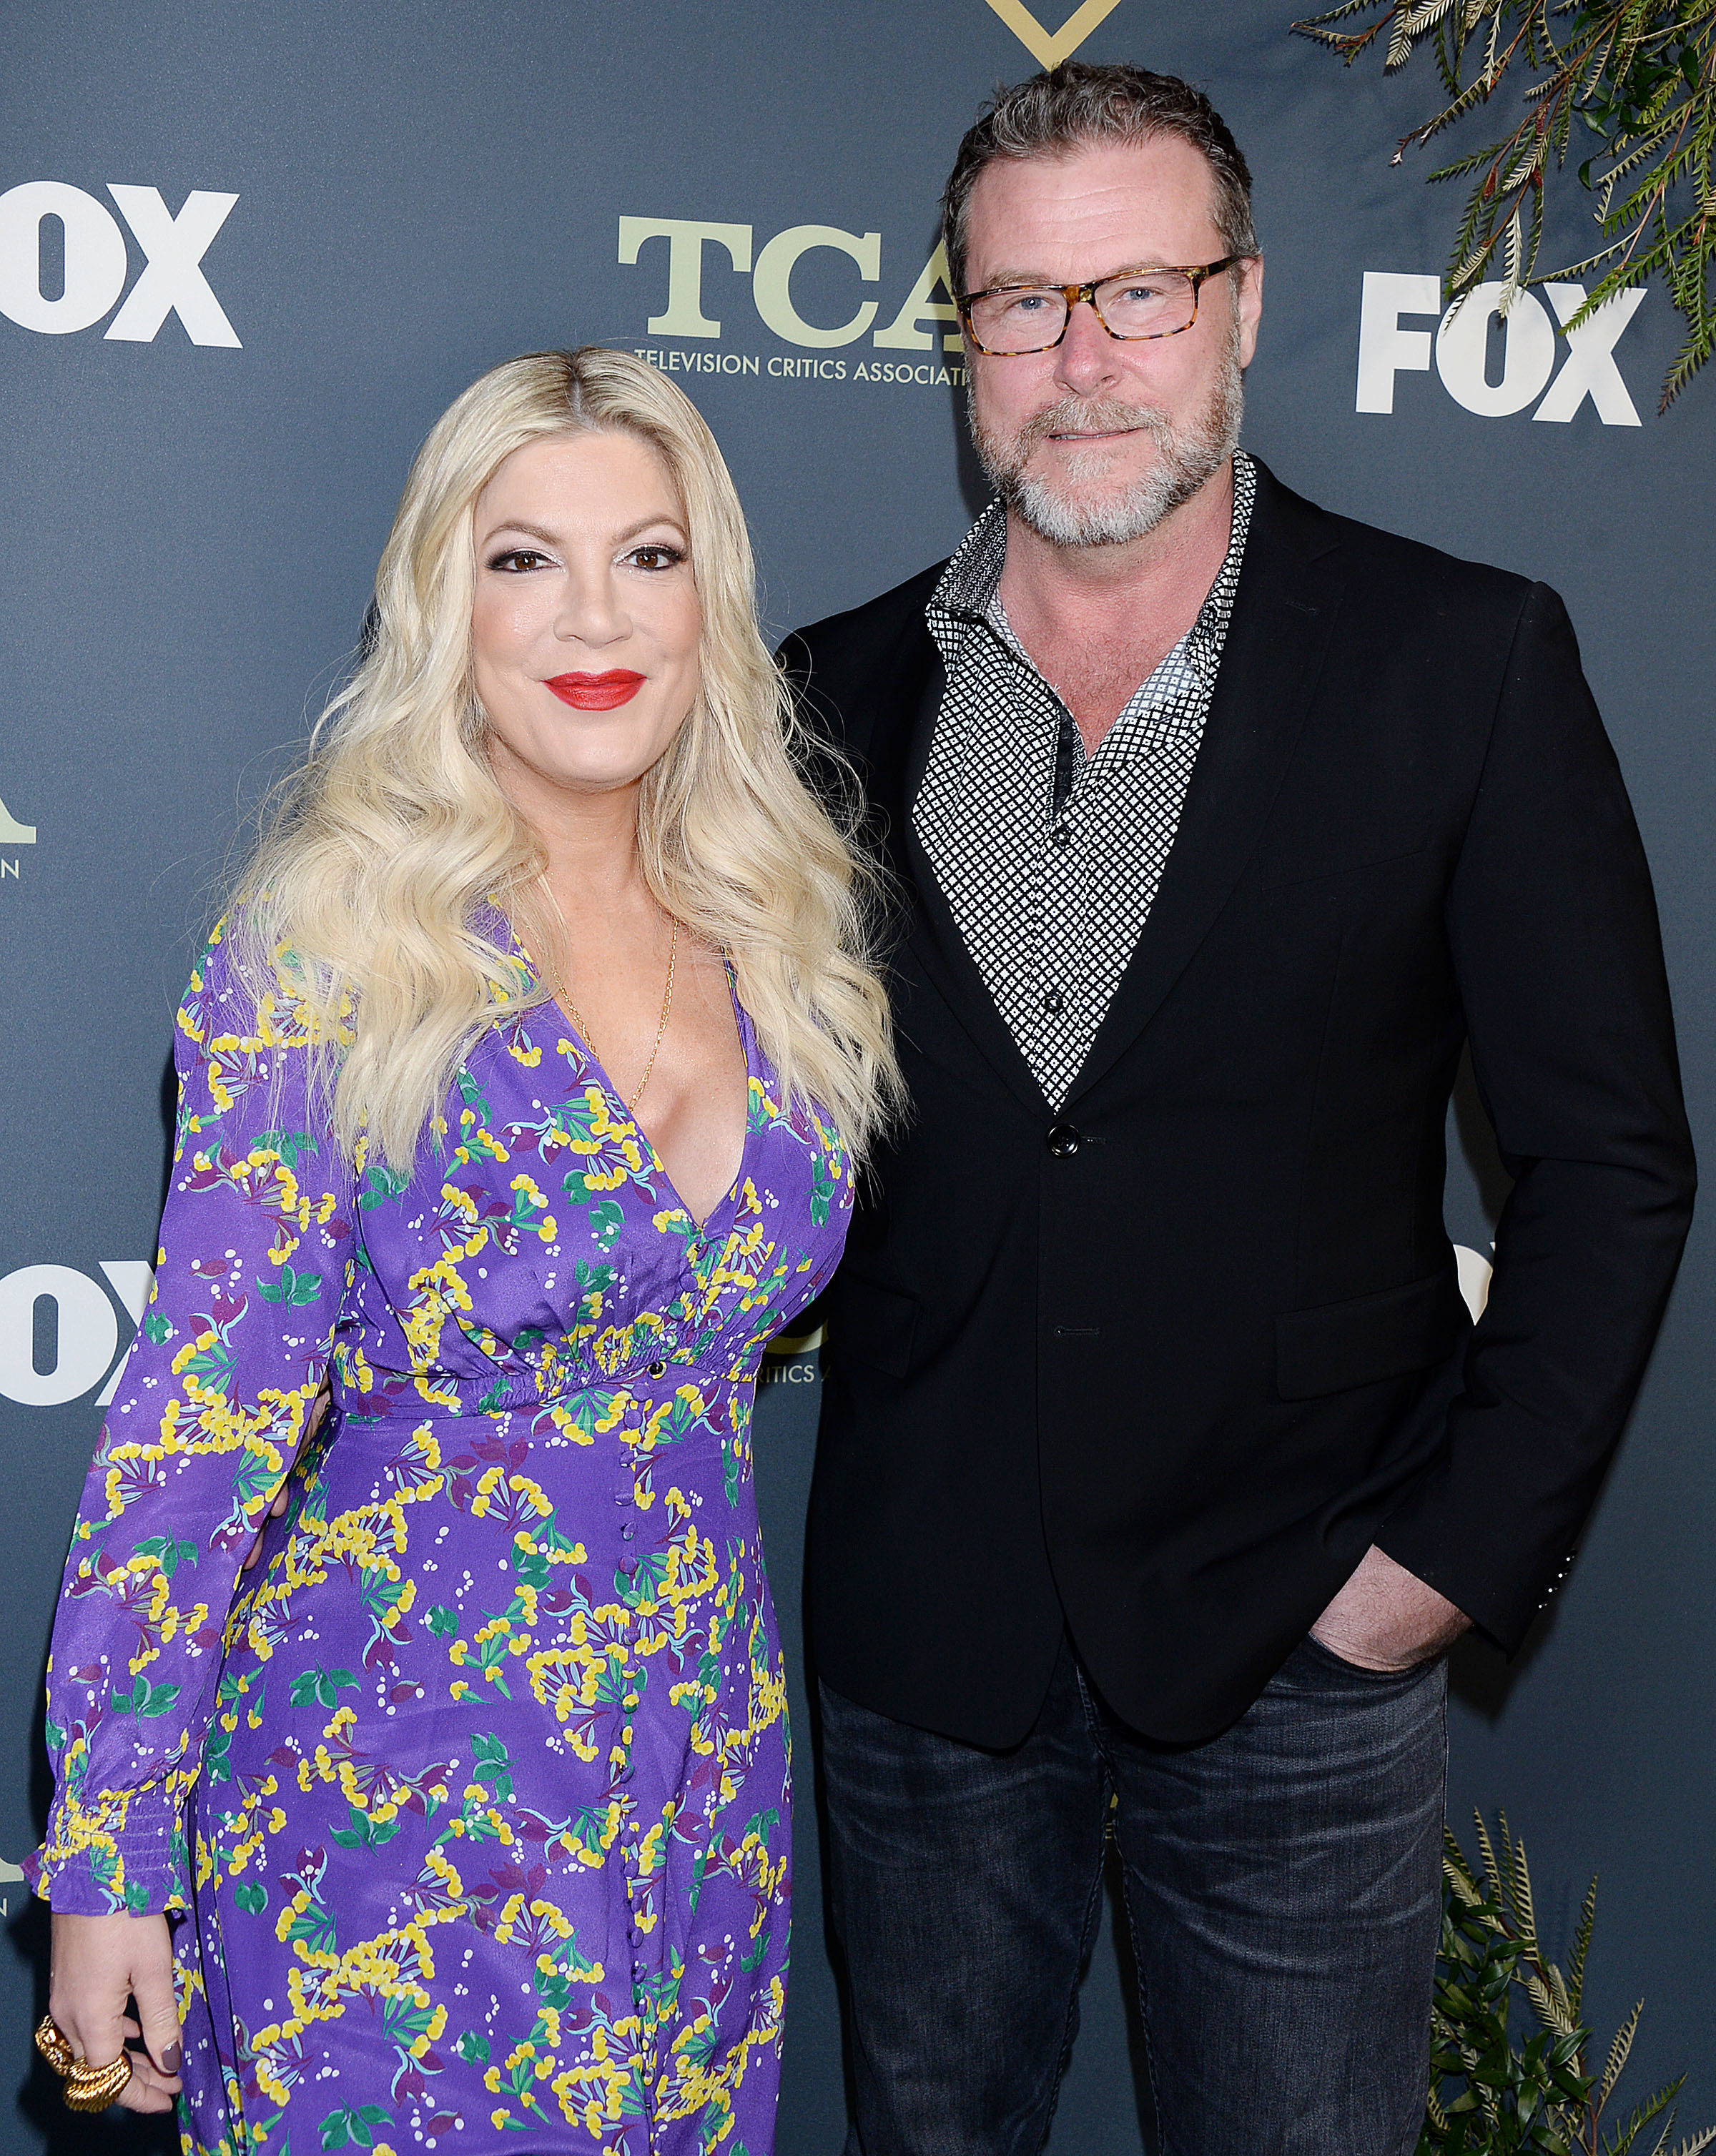 Tori Spelling and Dean McDermott attend the Fox Winter All Star Party during the TCA Winter Press Tour in Los Angeles on Feb. 6, 2019.